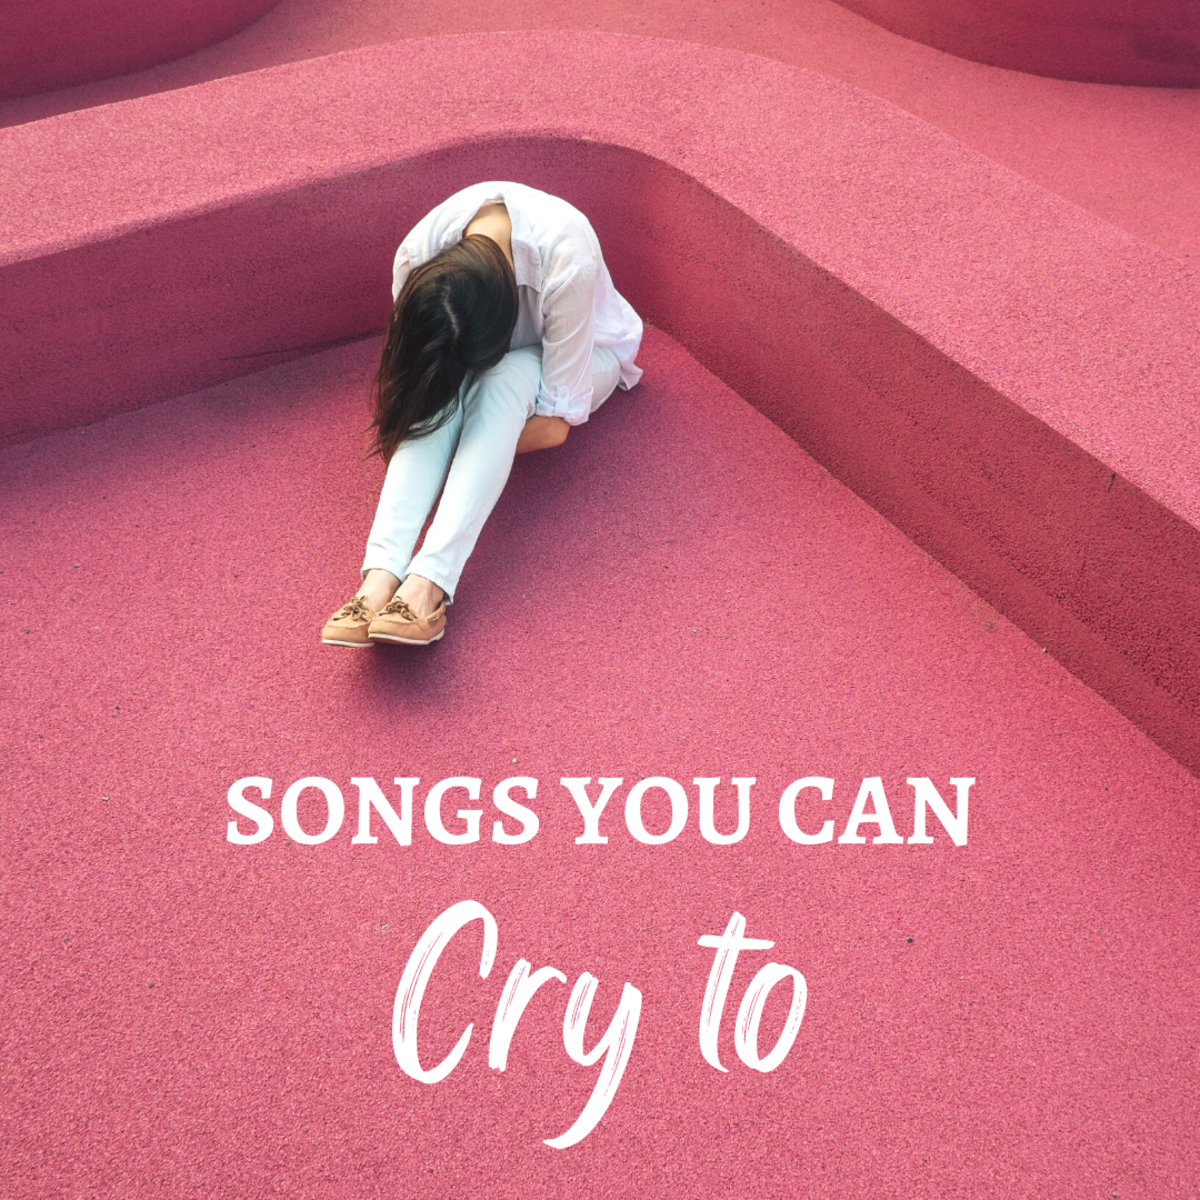 Are you feeling down and looking for music you can cry to? Look no further!